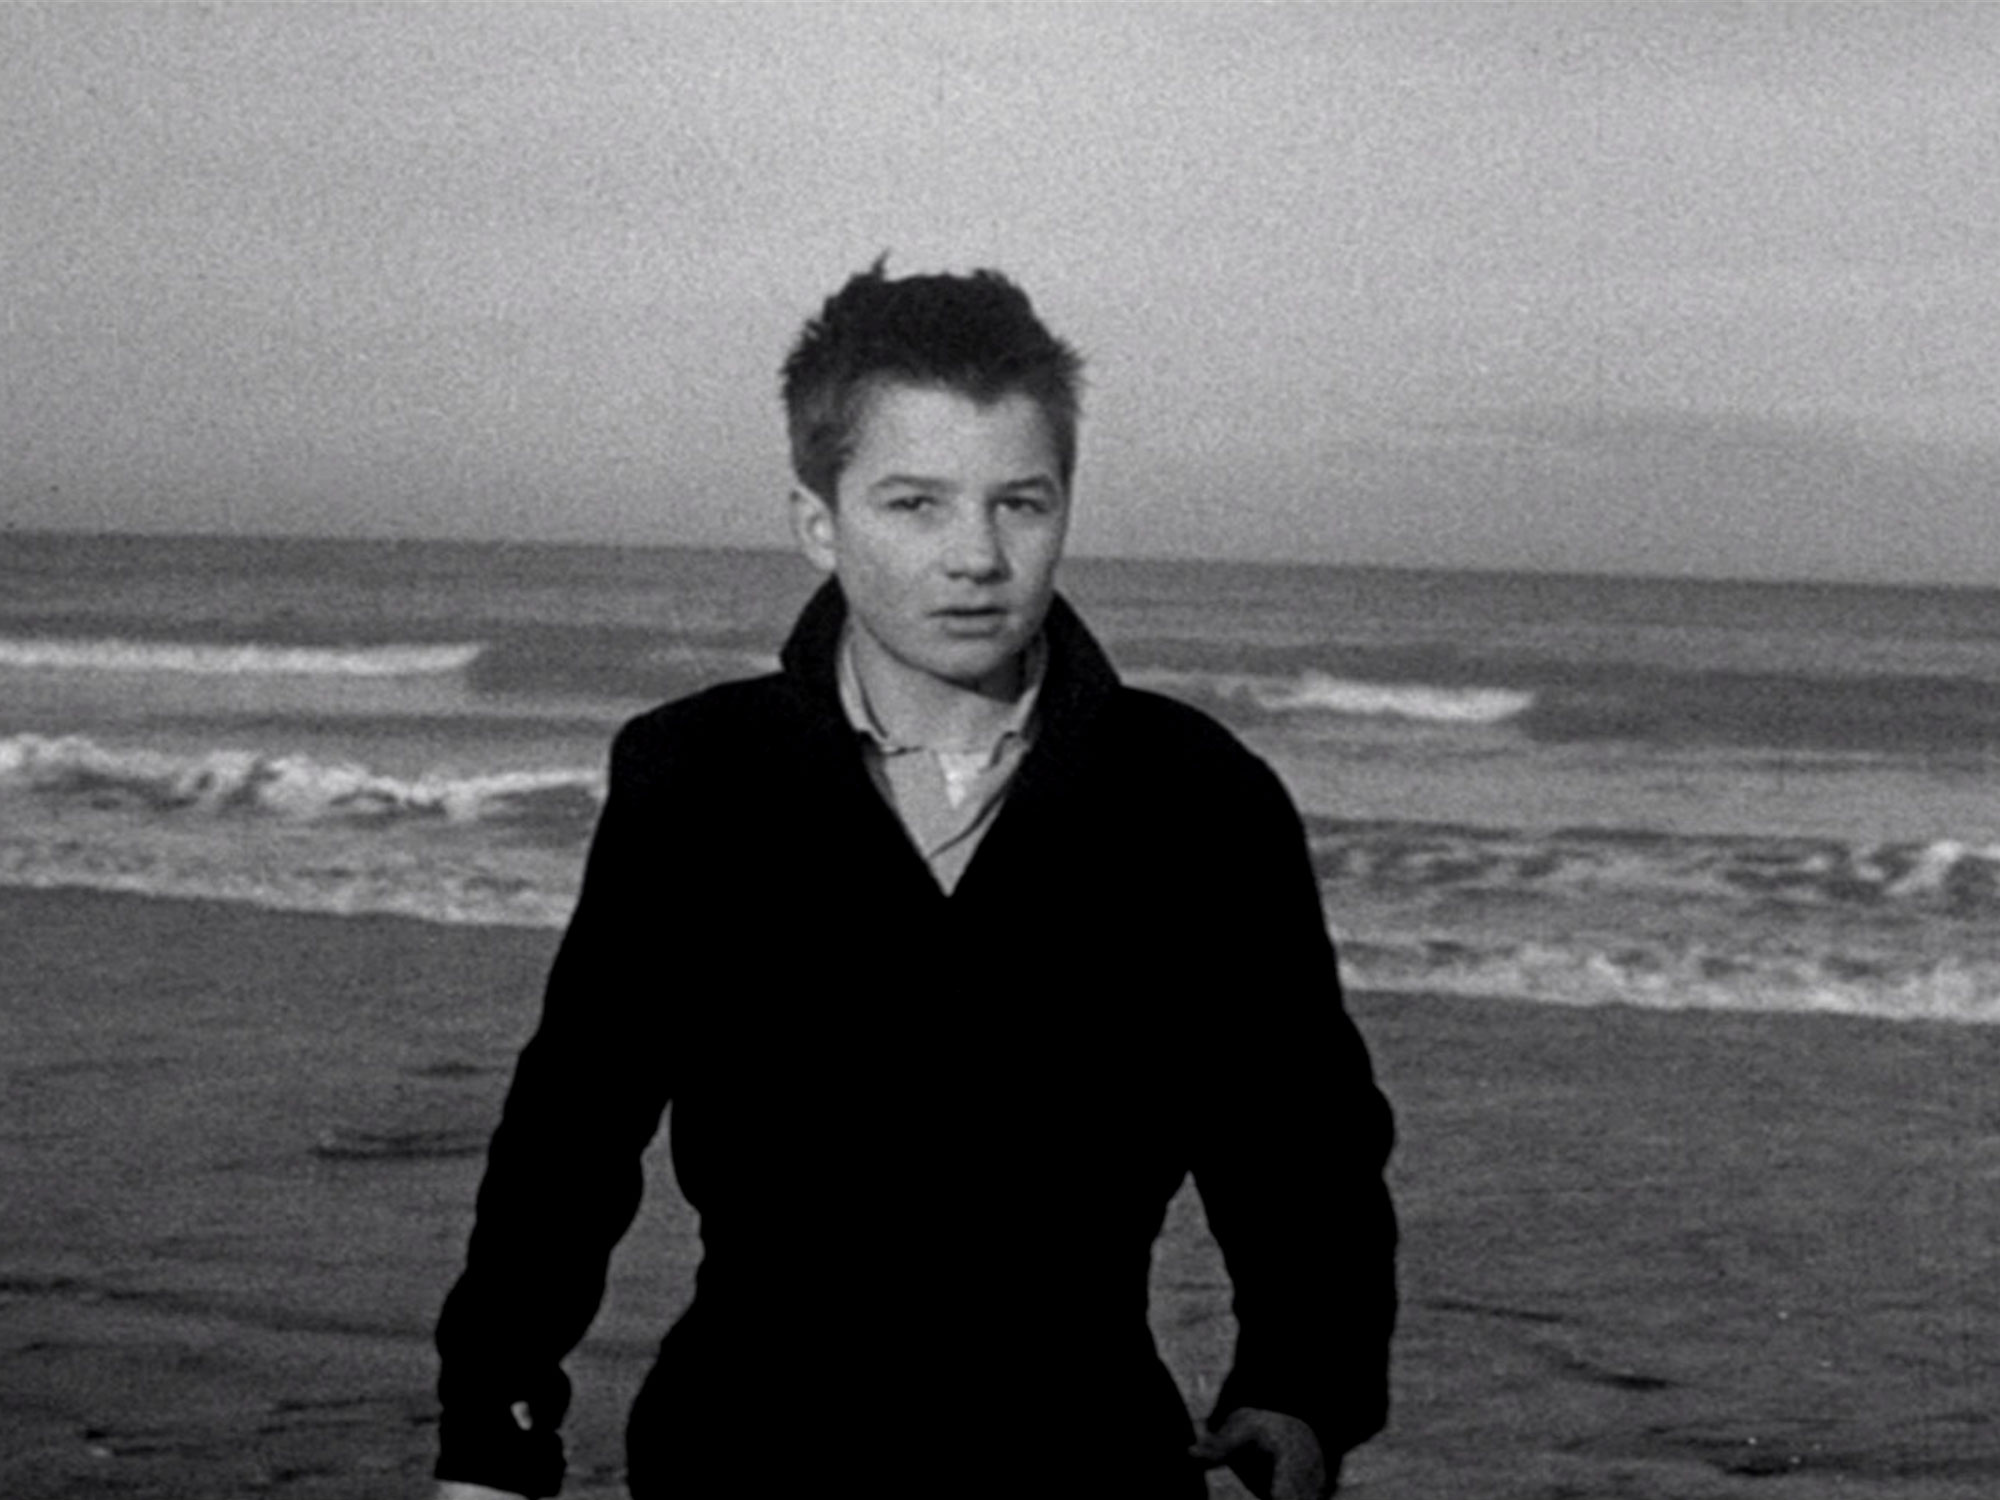 The 400 Blows ending